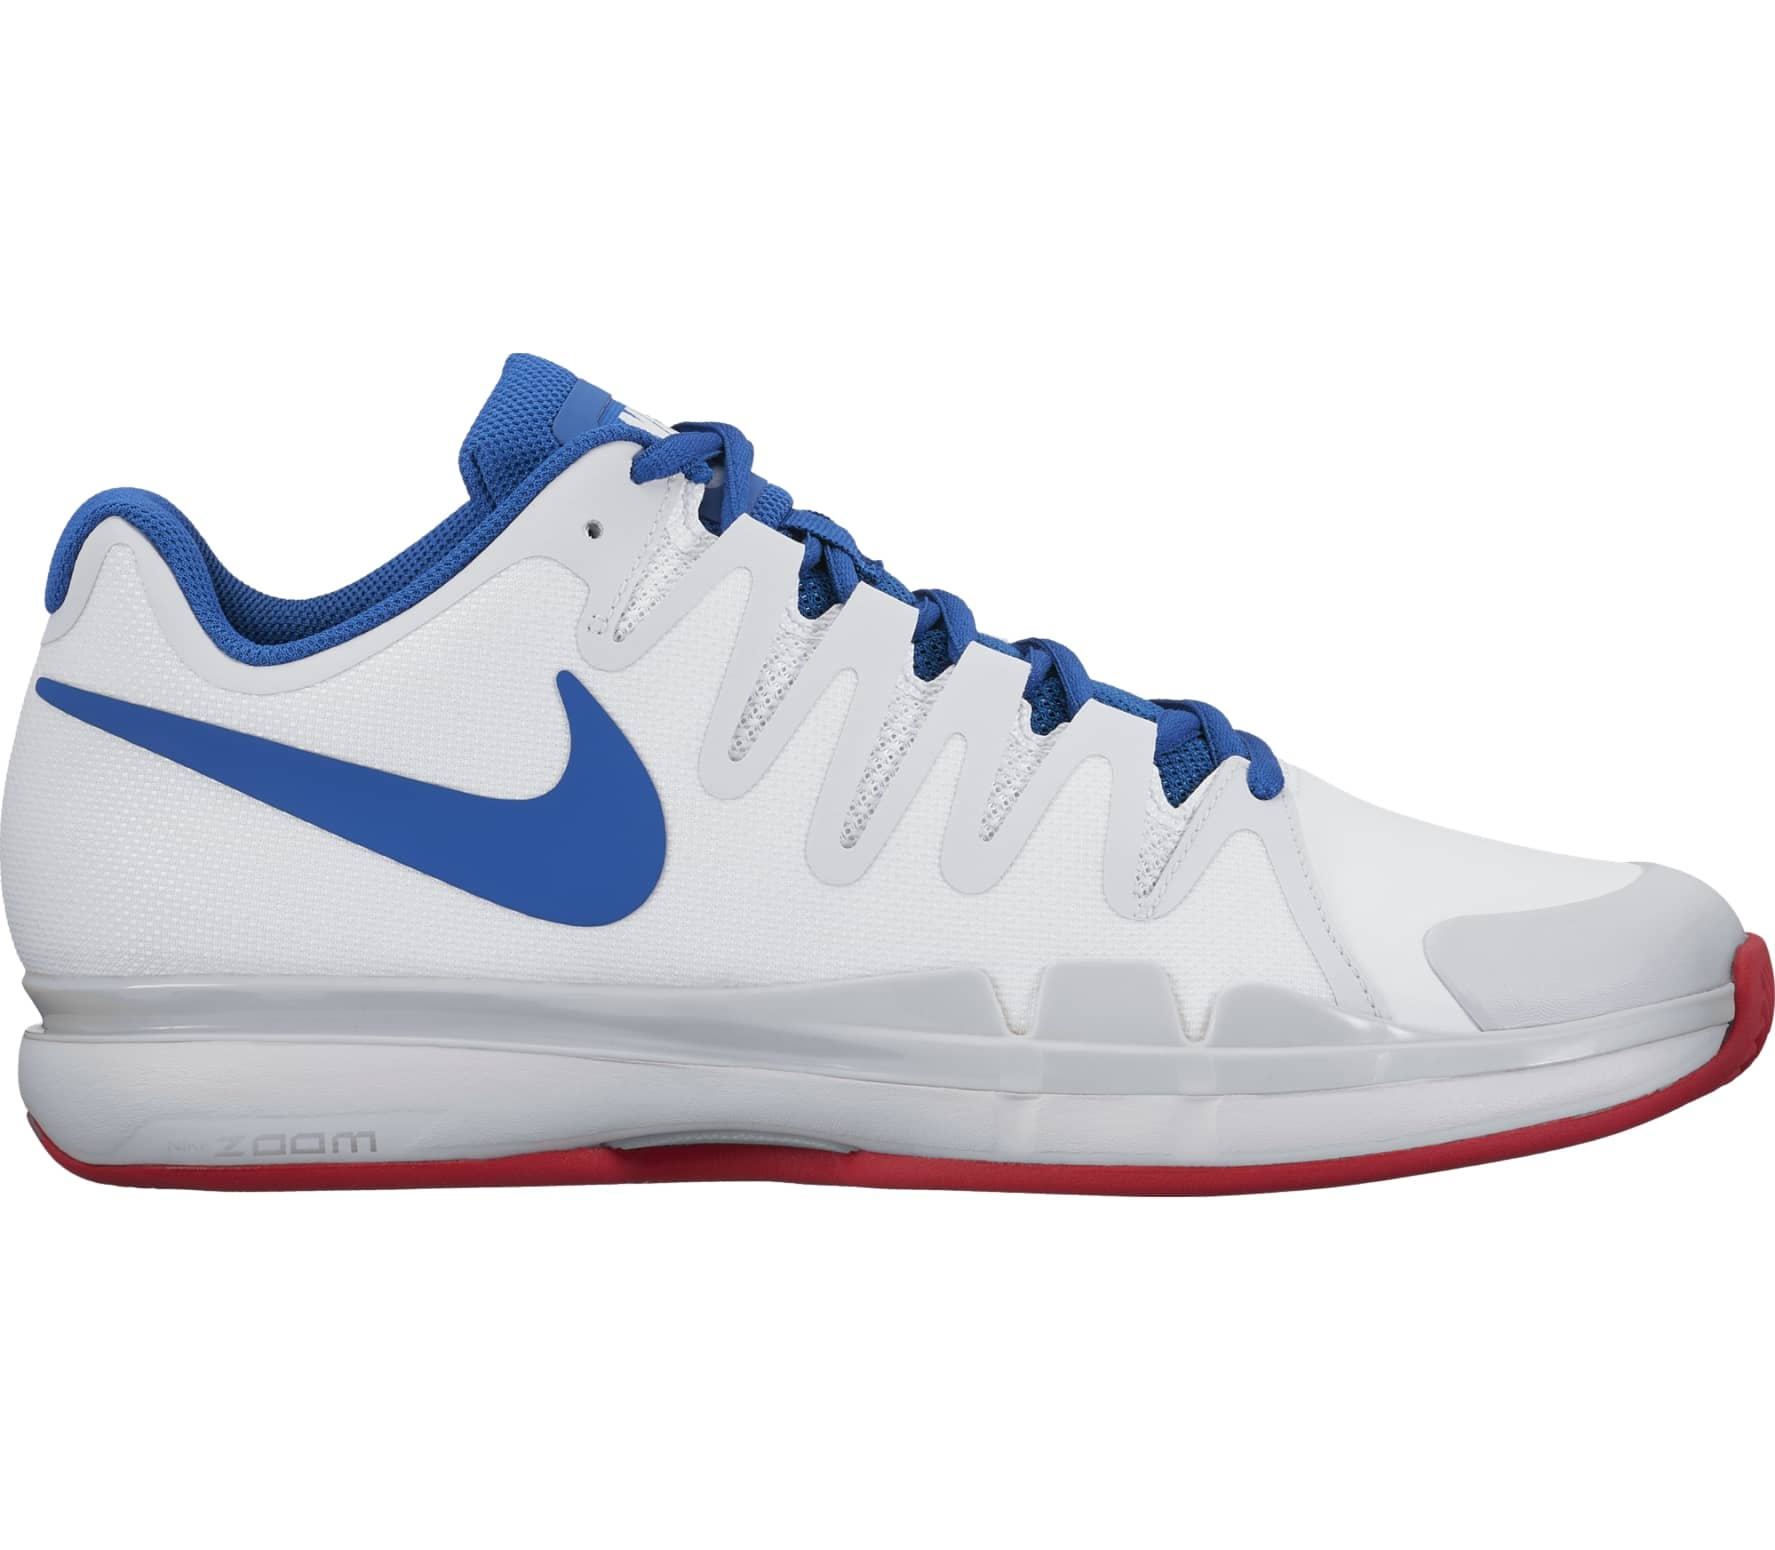 Tennis Vapor 9 Uomo Clay Scarpa Da Zoom Nike Tour 5 bianco Air xaRRqw4